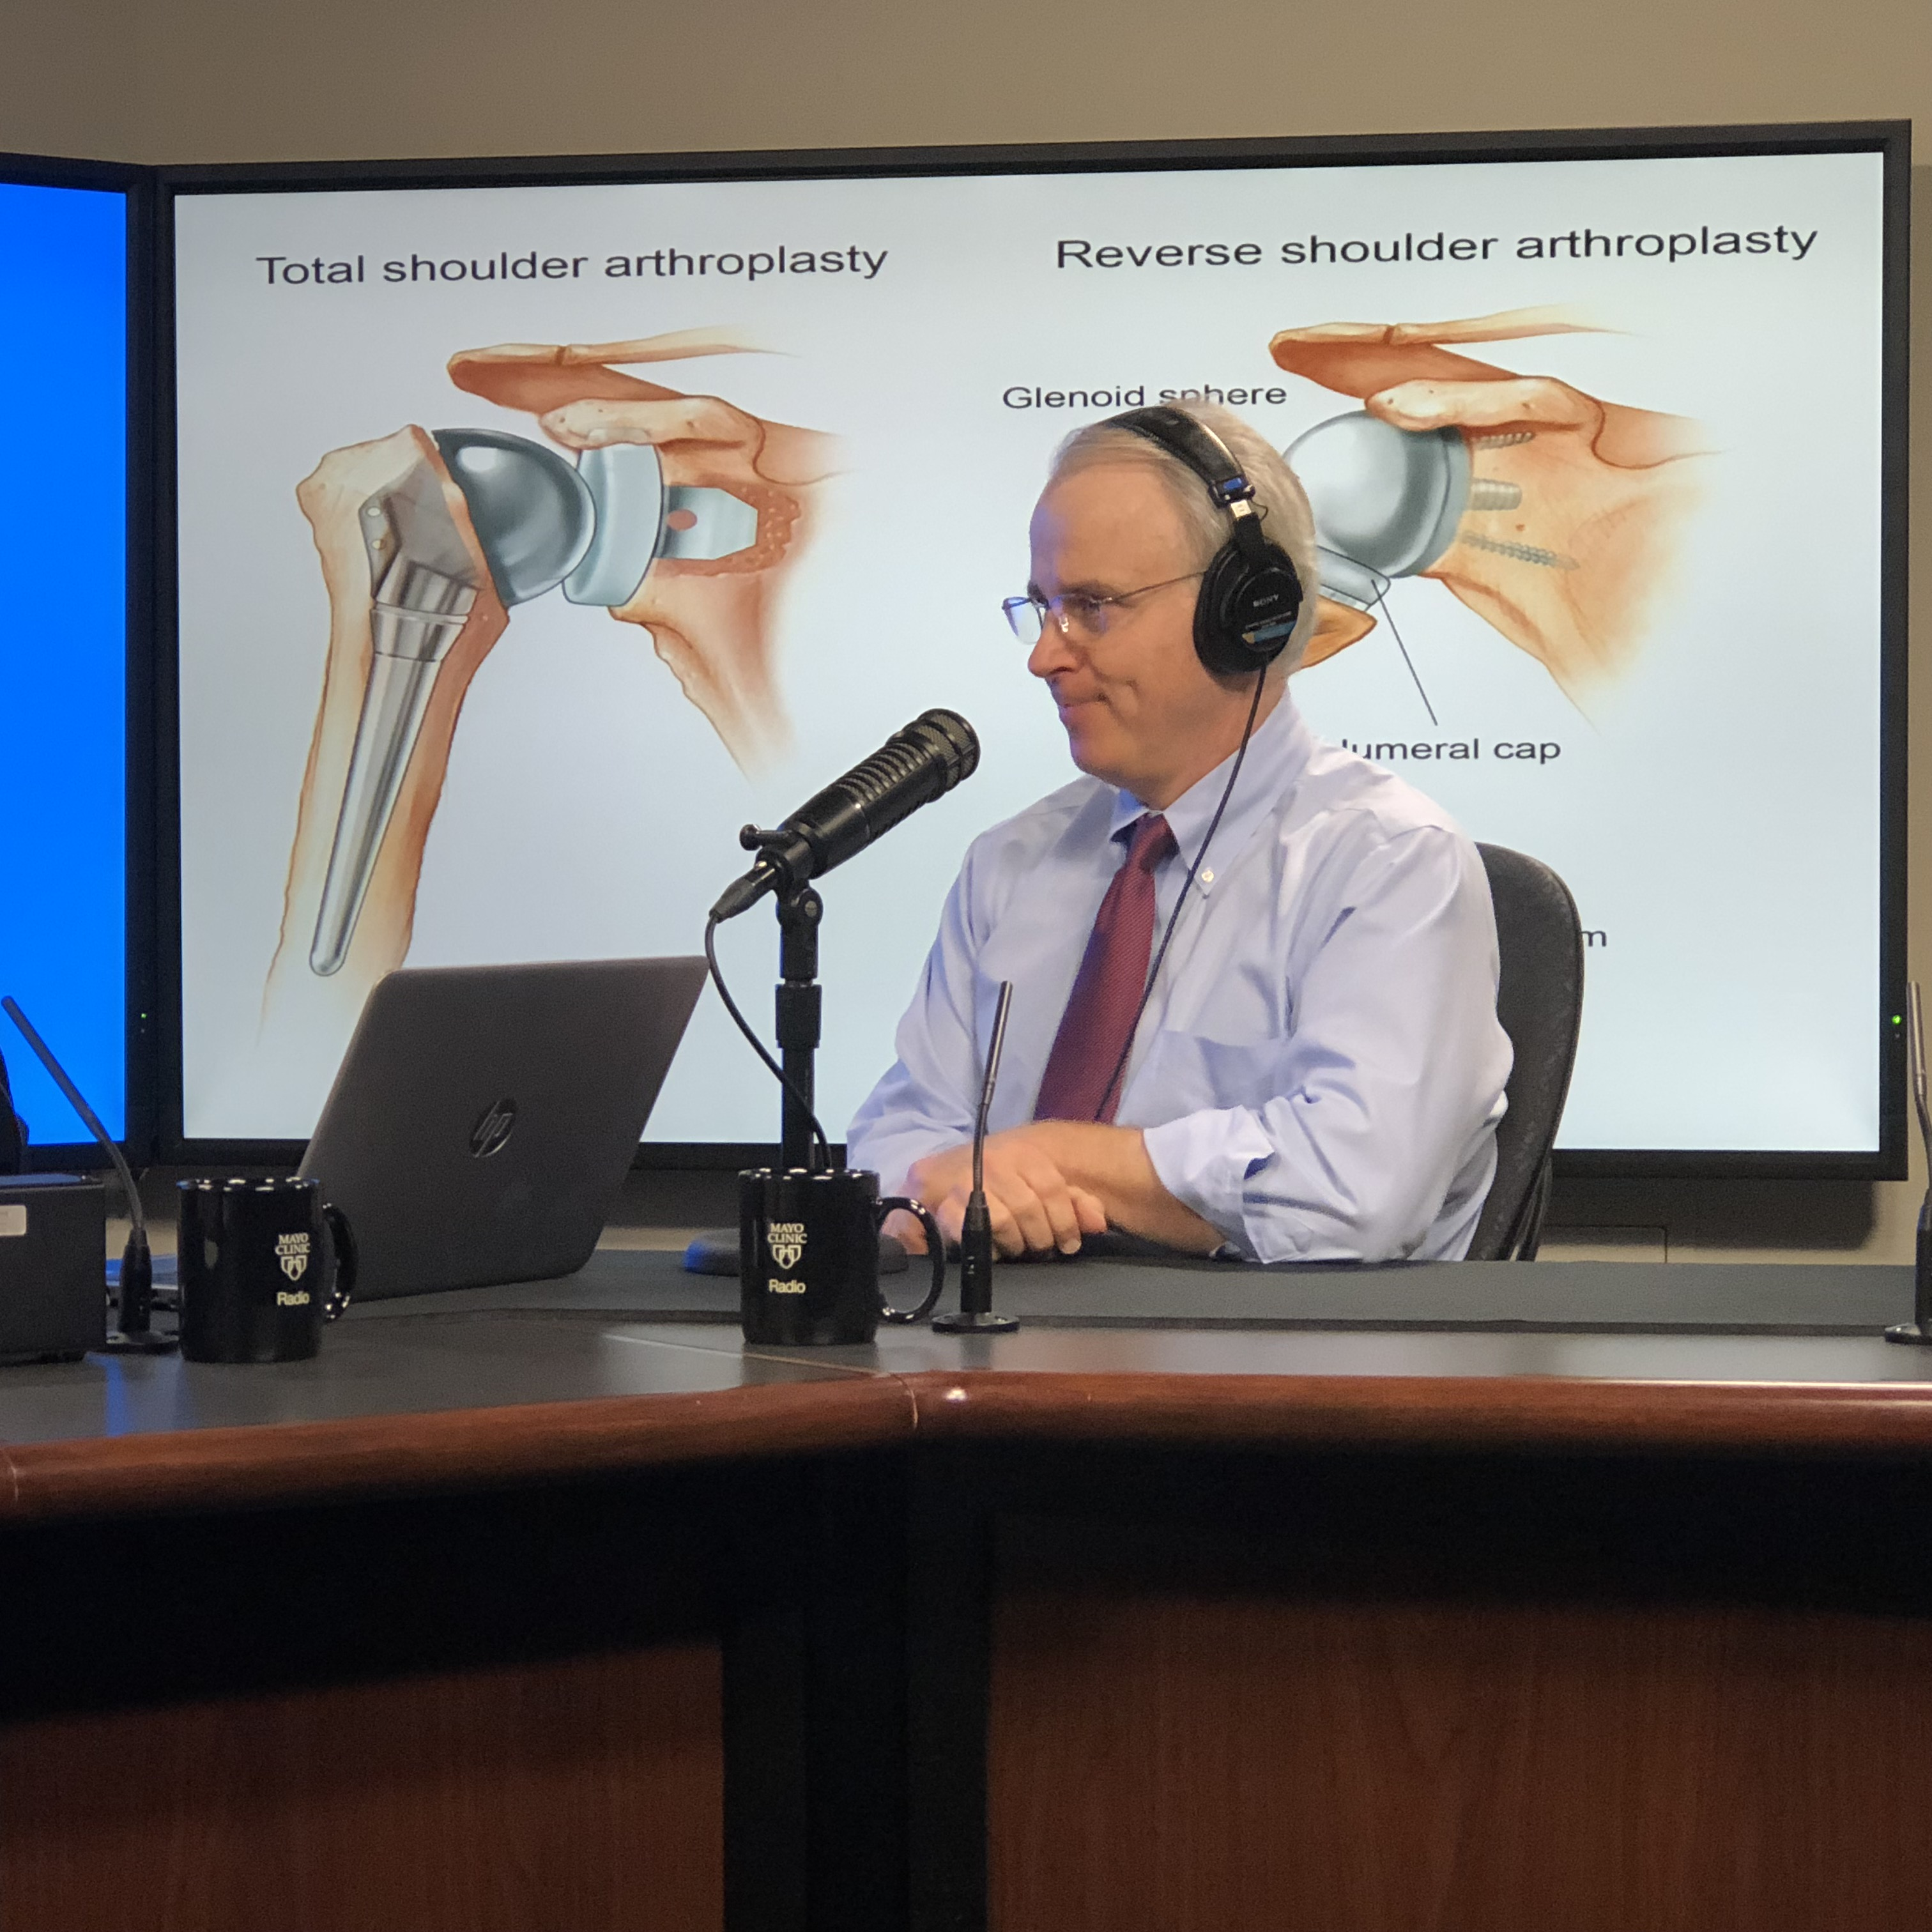 Dr. John Sperling being interviewed on Mayo Clinic Radio